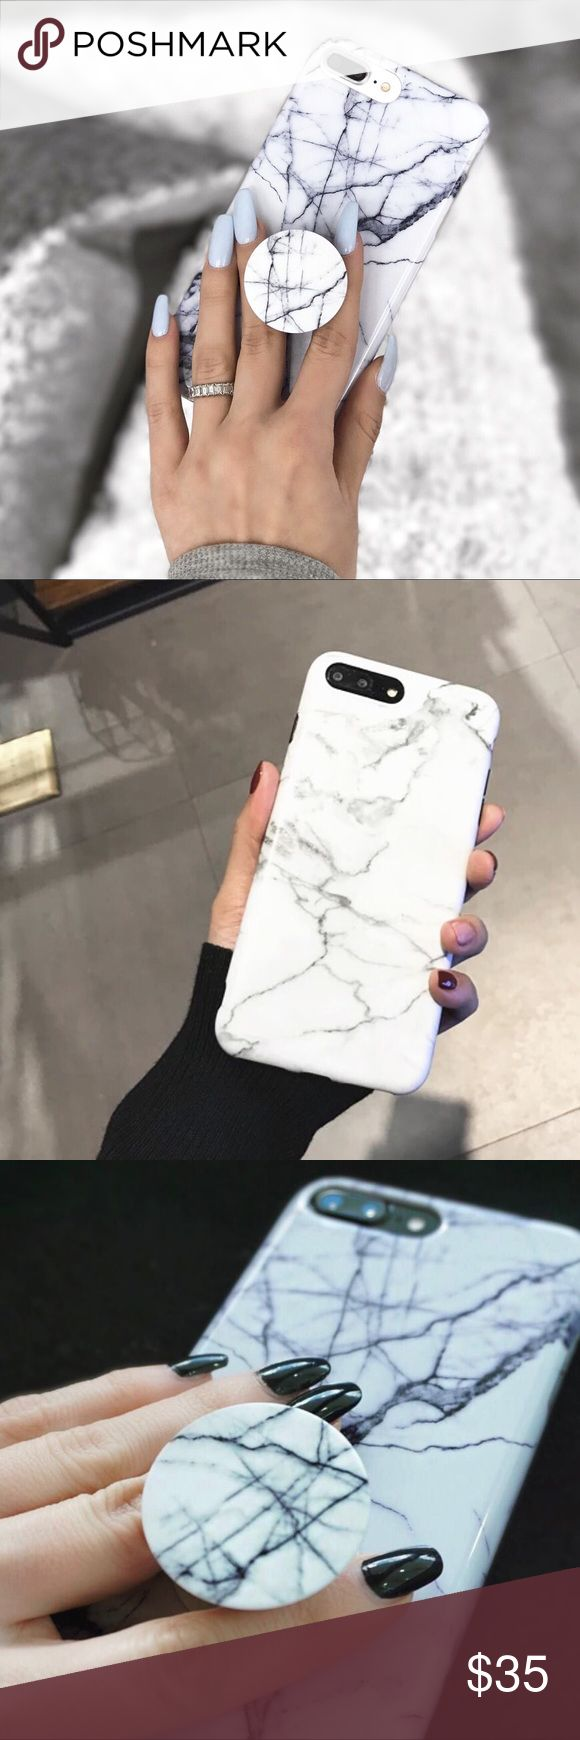 *BUNDLE DEAL* white marble iPhone case + popsocket *PREORDER NOW* This is a bundle deal for white marble iPhone 7 plus case plus matching popsocket.  -Brand new -Shiny -Soft silicon  -Scratch proof -Slip proof  If you don't want to preorder but would like to know when it's in stock, comment below to be notified when it's here!  Accessories Phone Cases